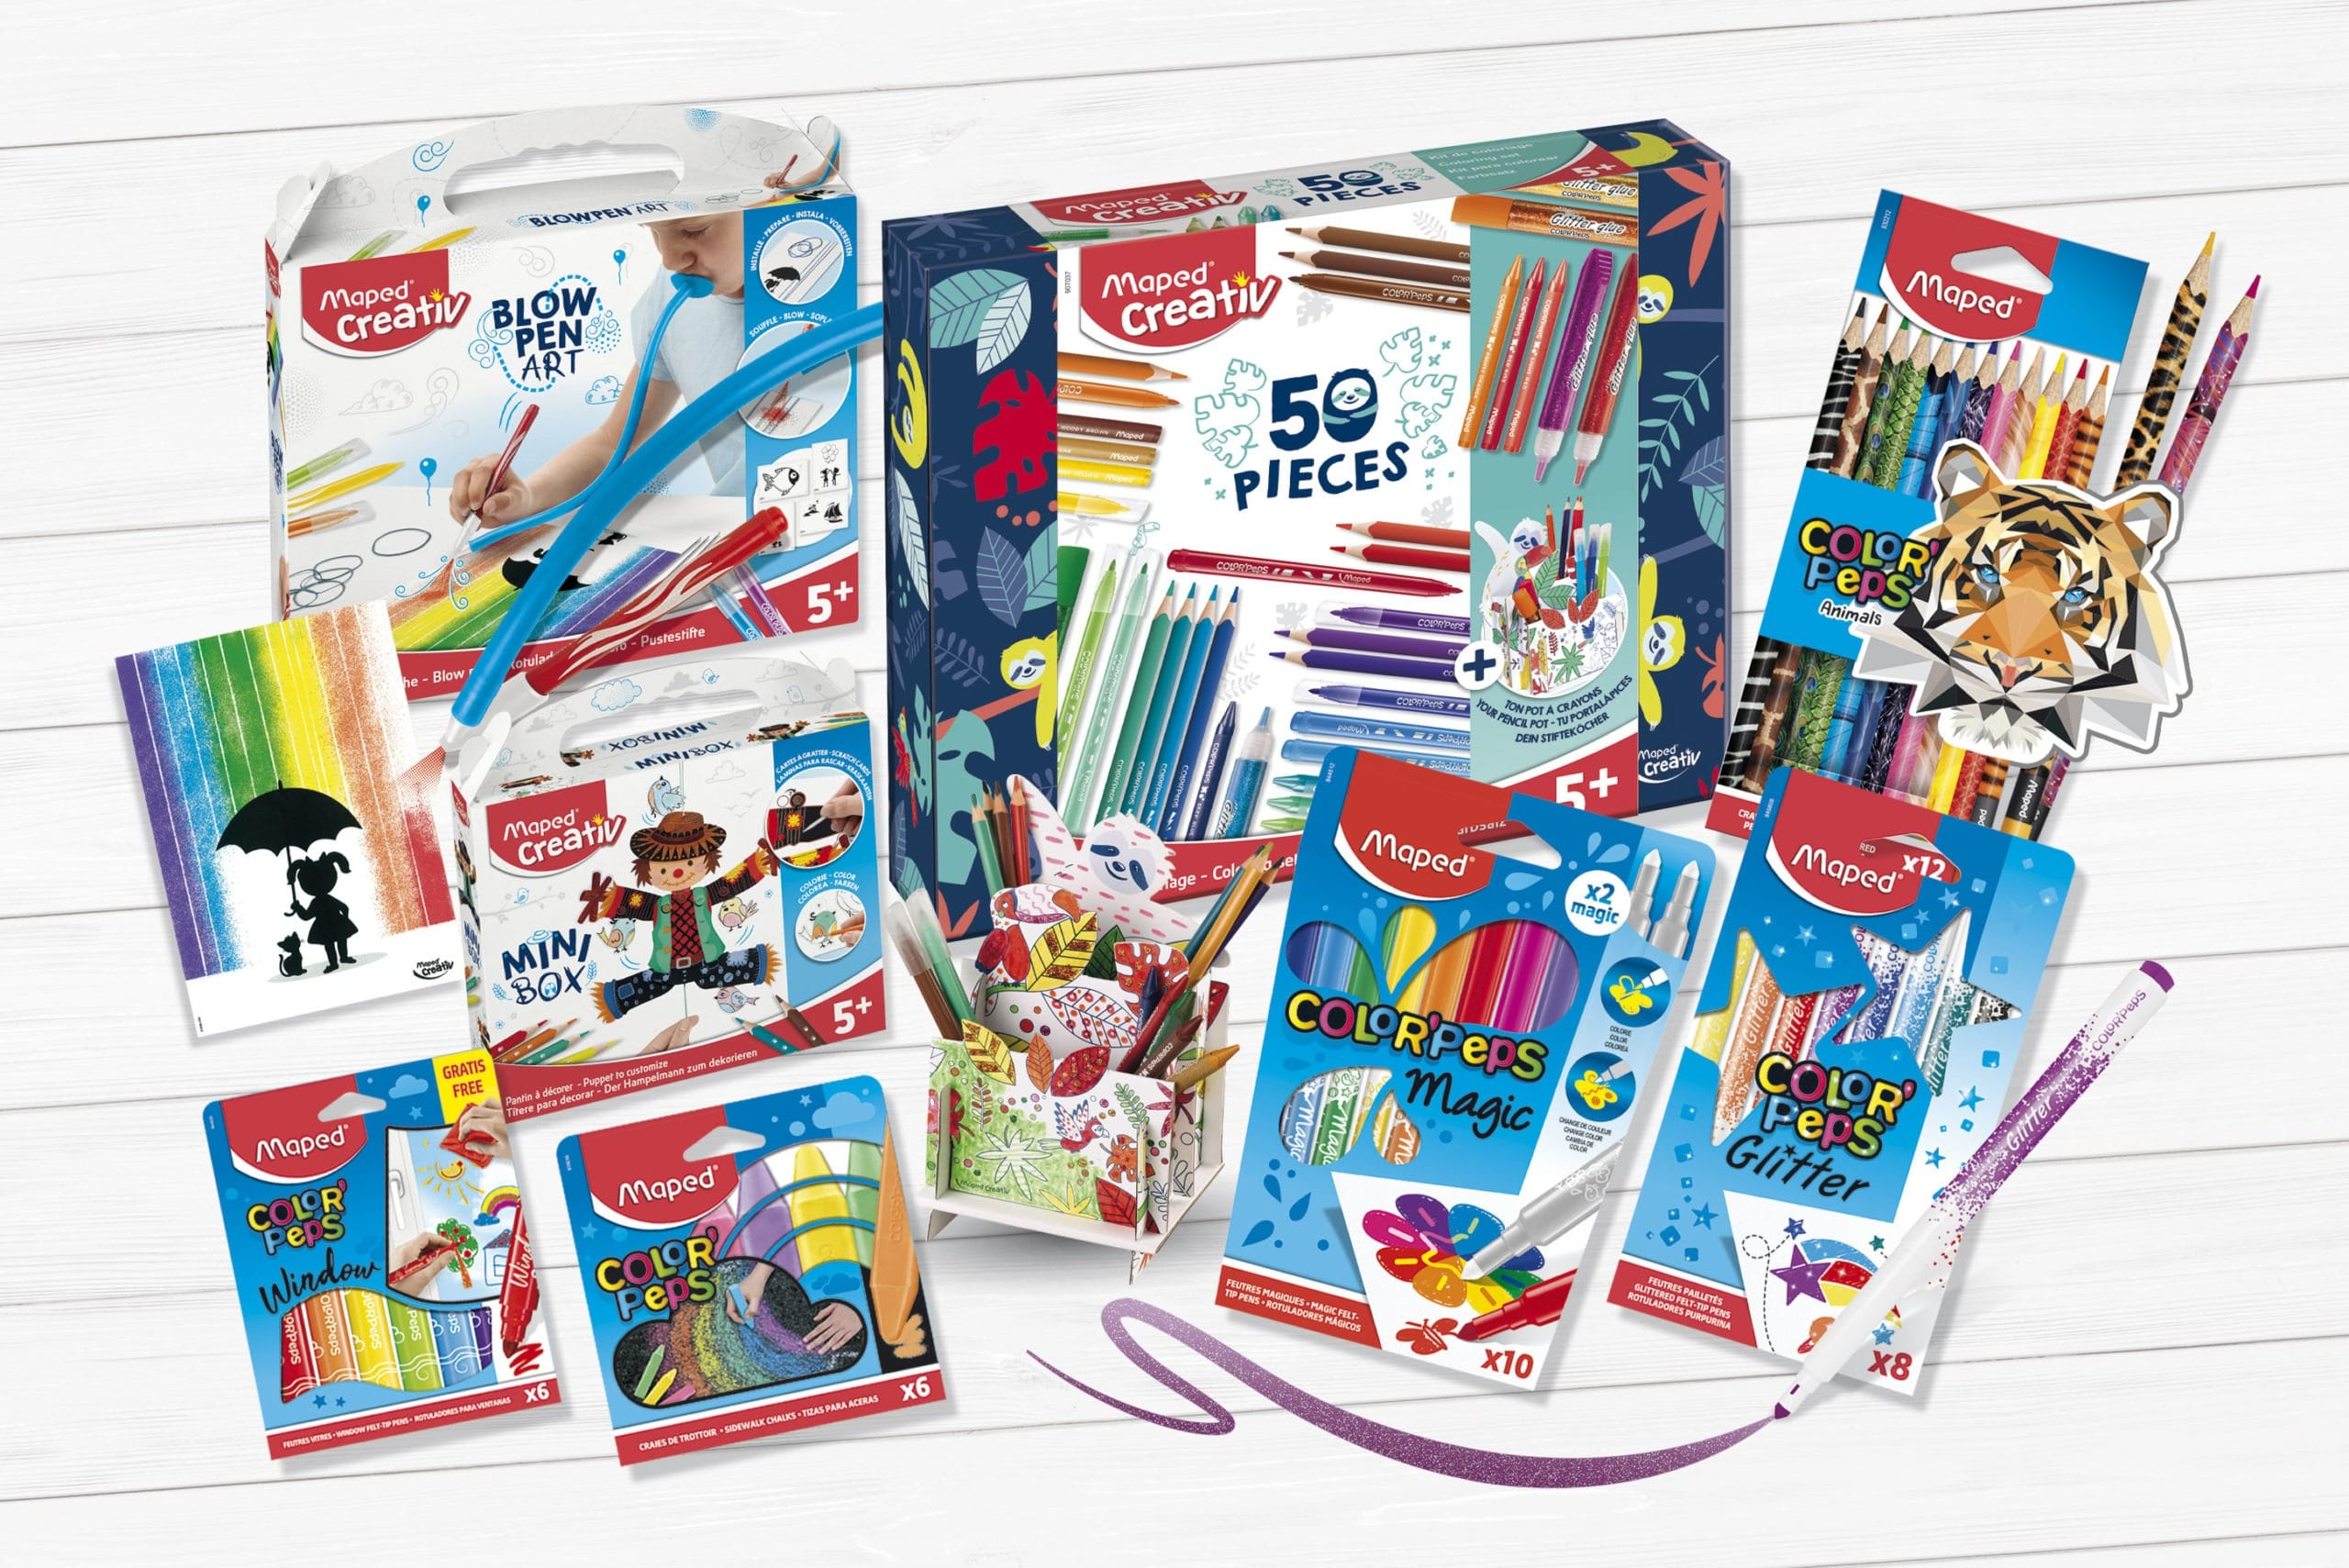 Maped Helix is sponsoring National Stationery Week's Get Crafty Day with Maped Creativ and Maped Color'Peps